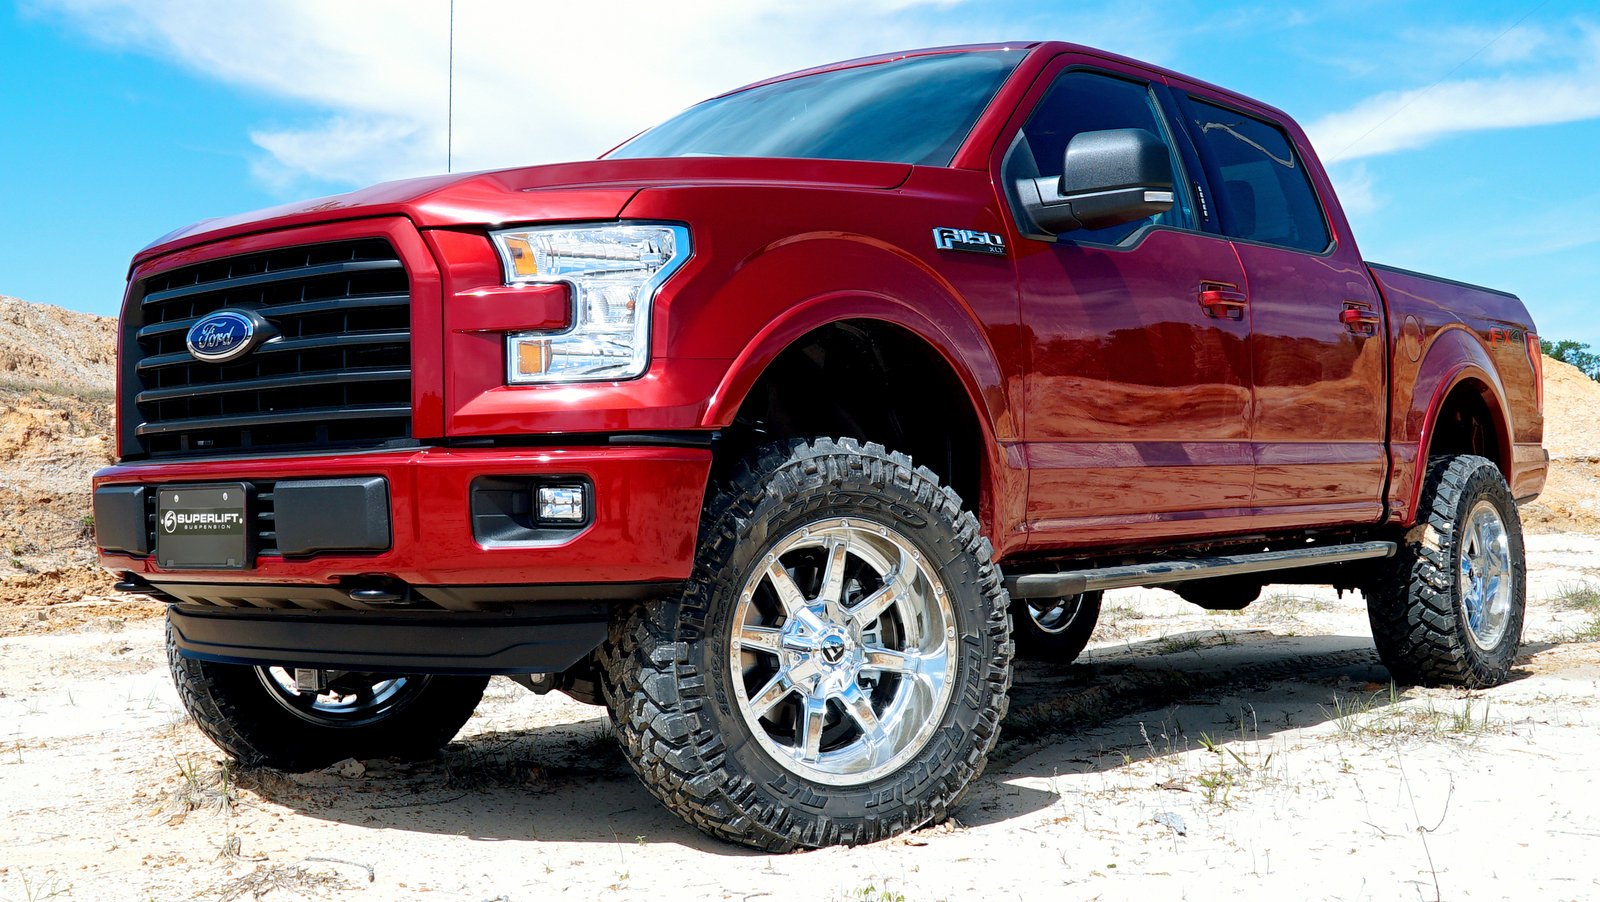 superlift now offering lift kits for the 2015 2016 ford f 150 picture 688282 truck news. Black Bedroom Furniture Sets. Home Design Ideas